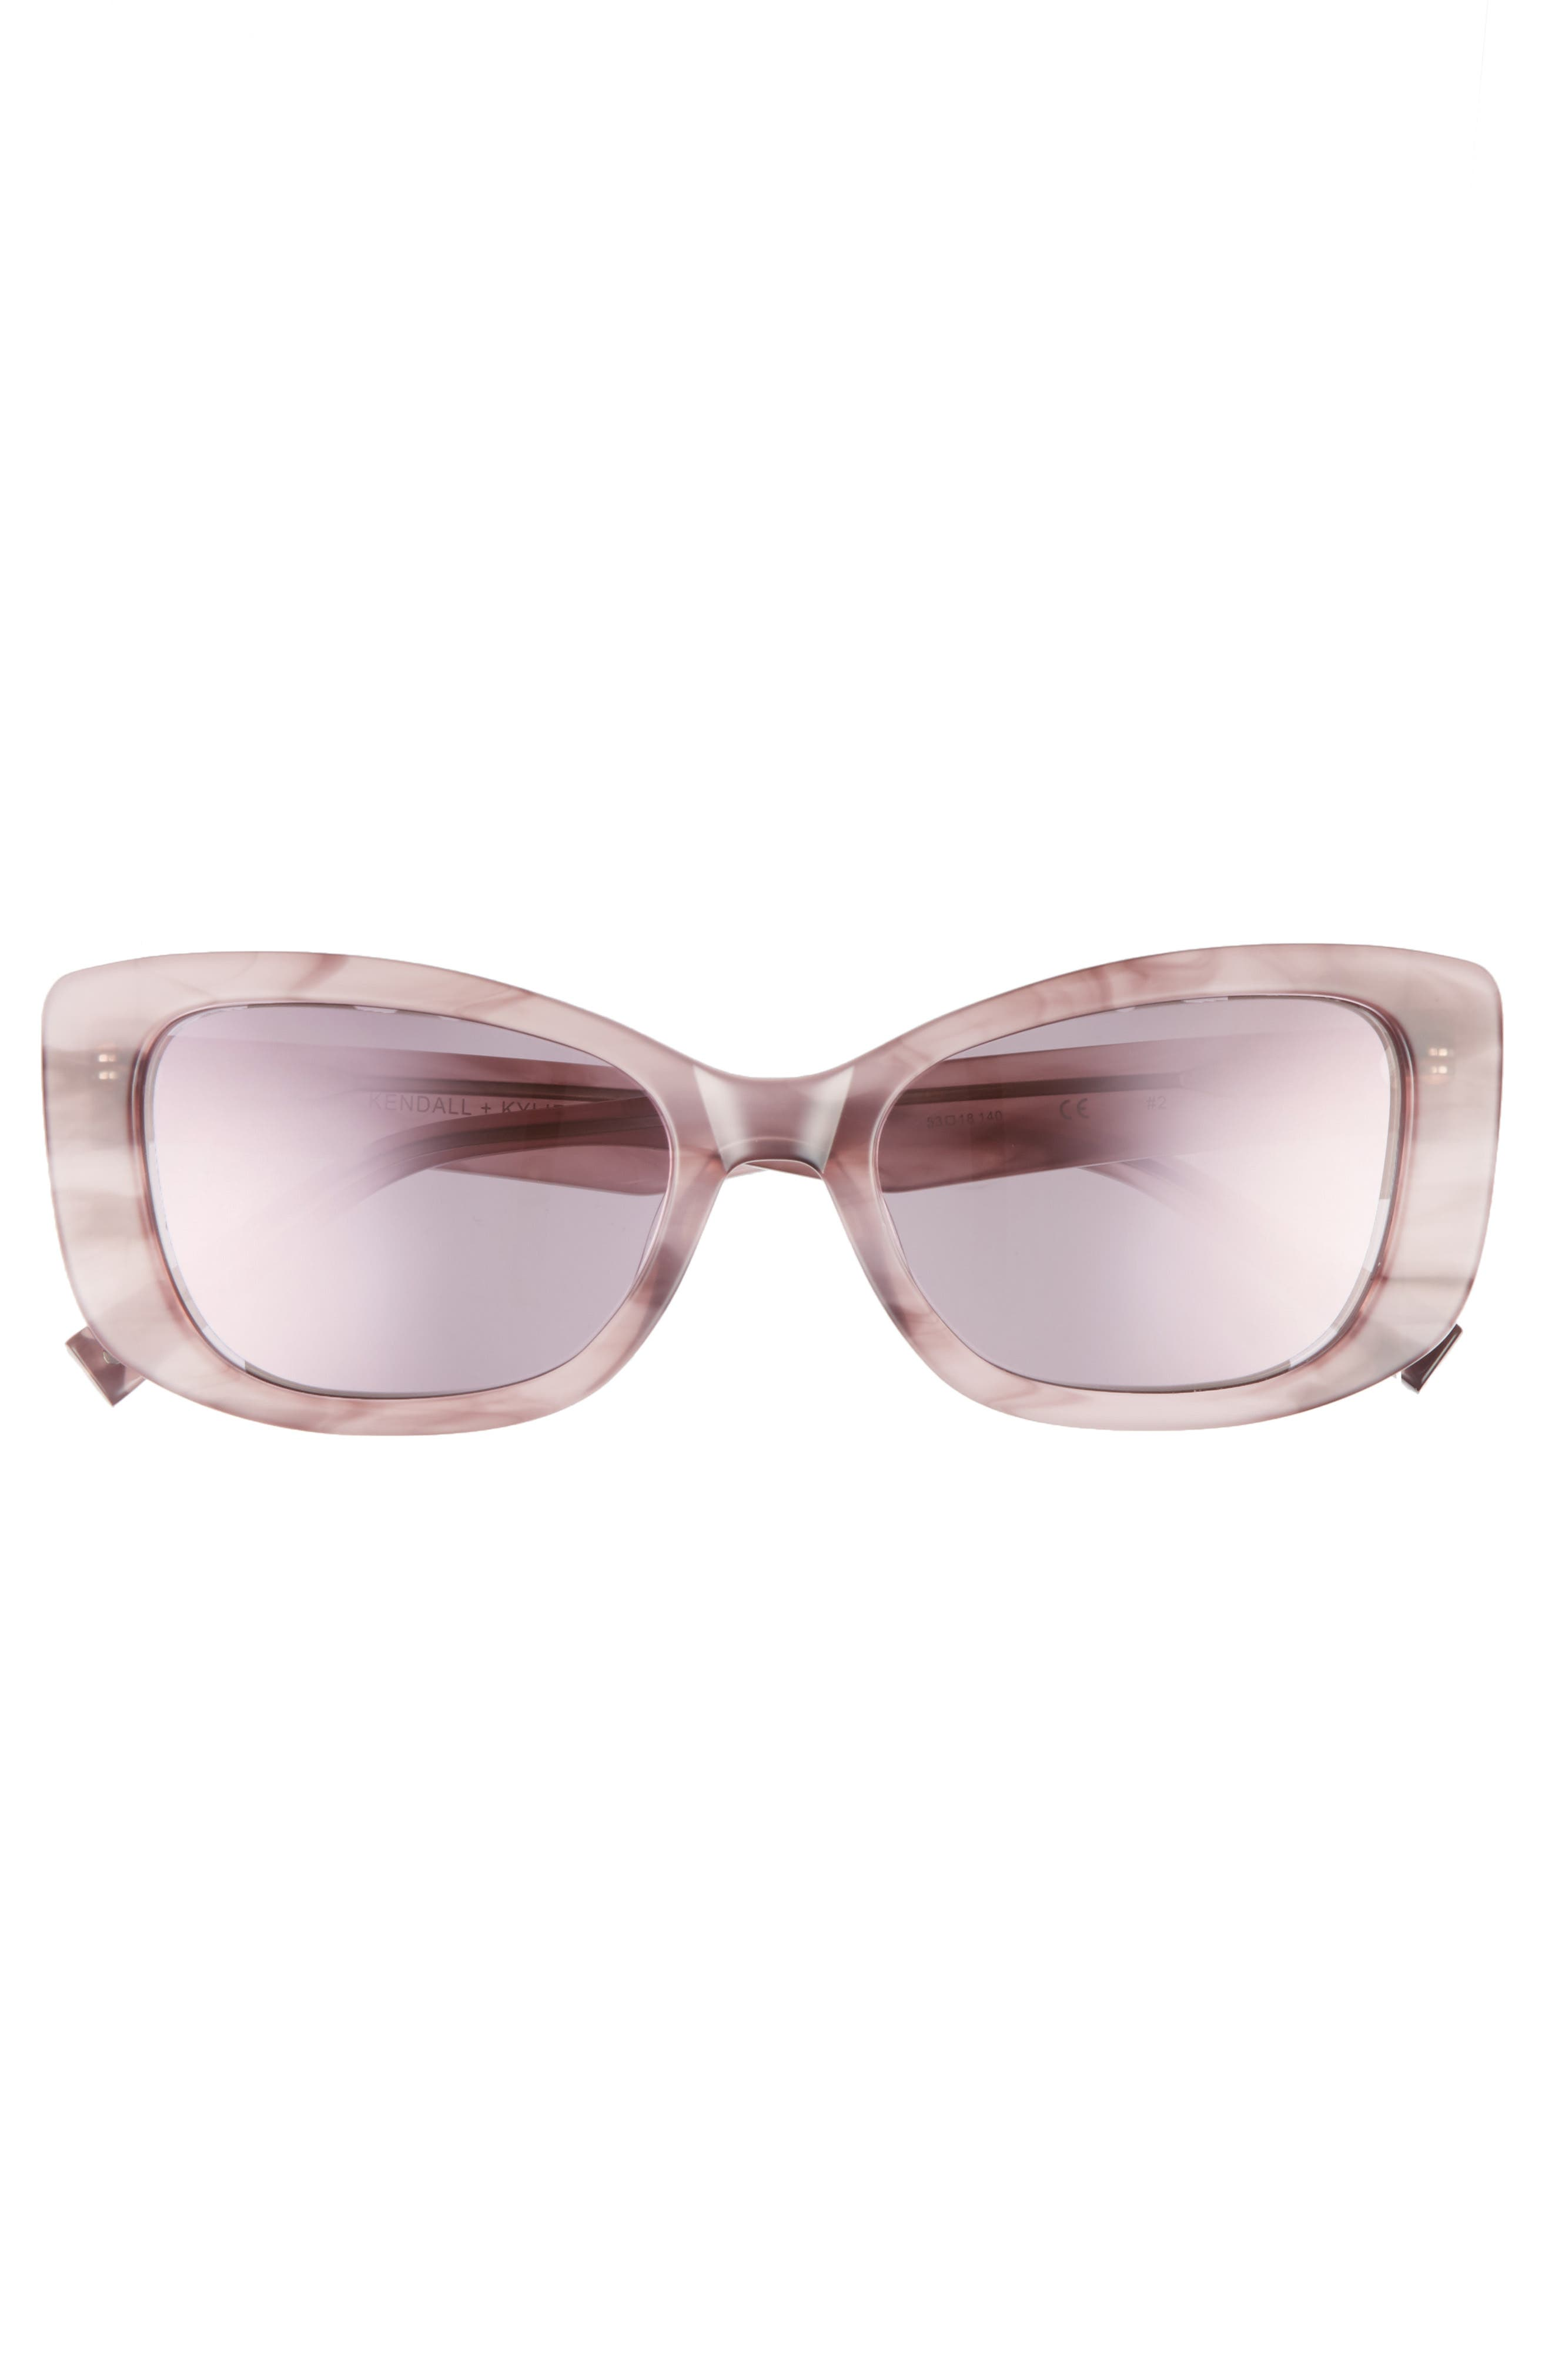 53mm Cat Eye Sunglasses,                             Alternate thumbnail 3, color,                             Rose Horn